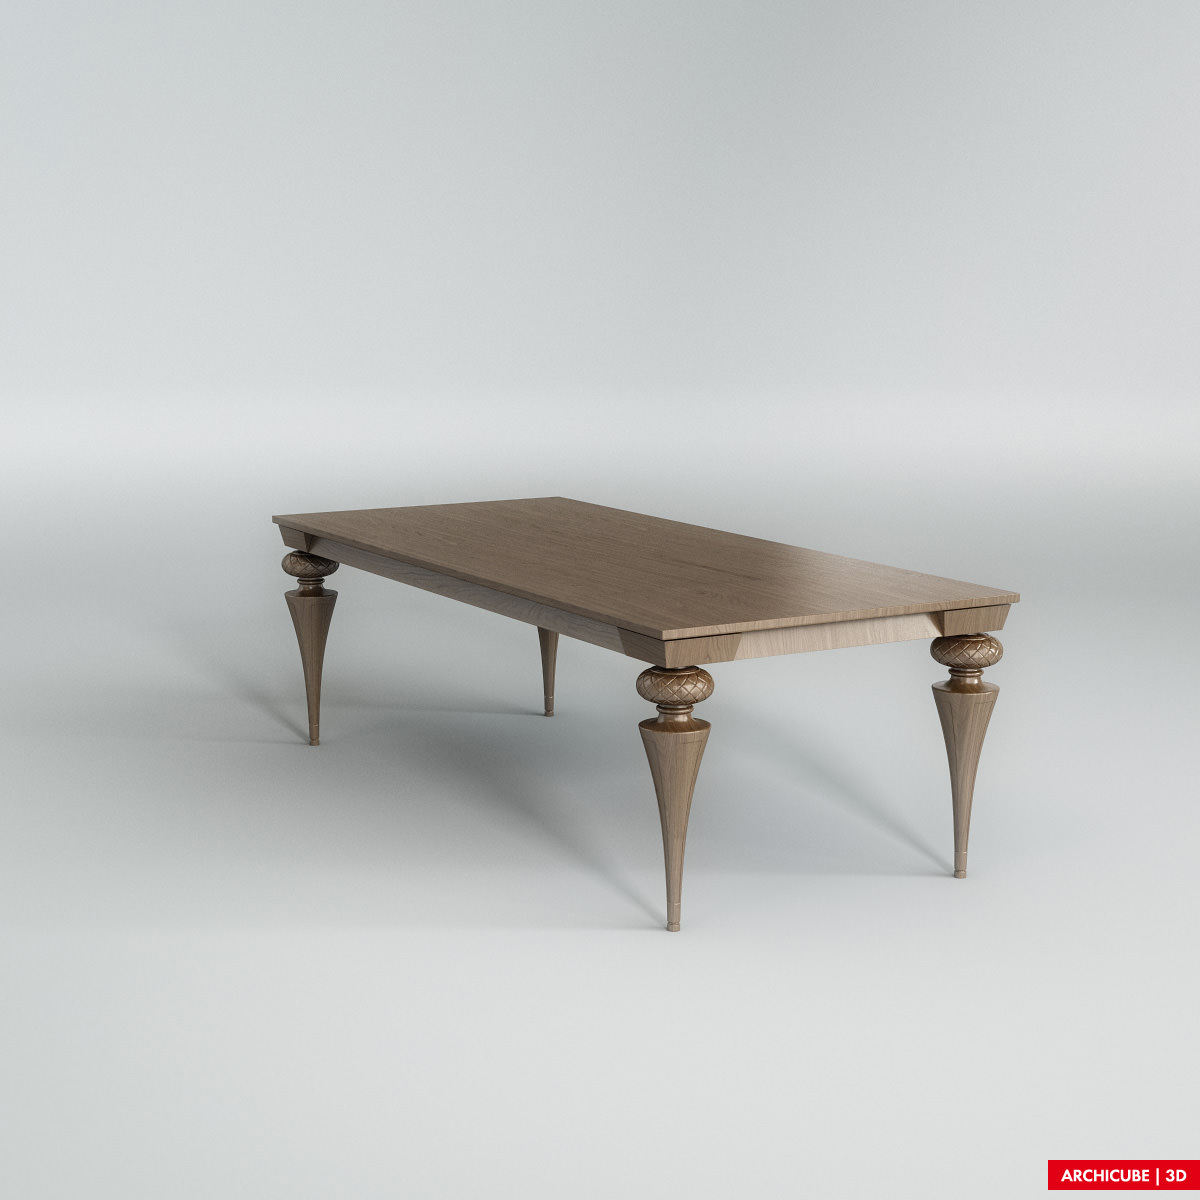 Dining table 003 3d model max obj fbx for Dining table latest model